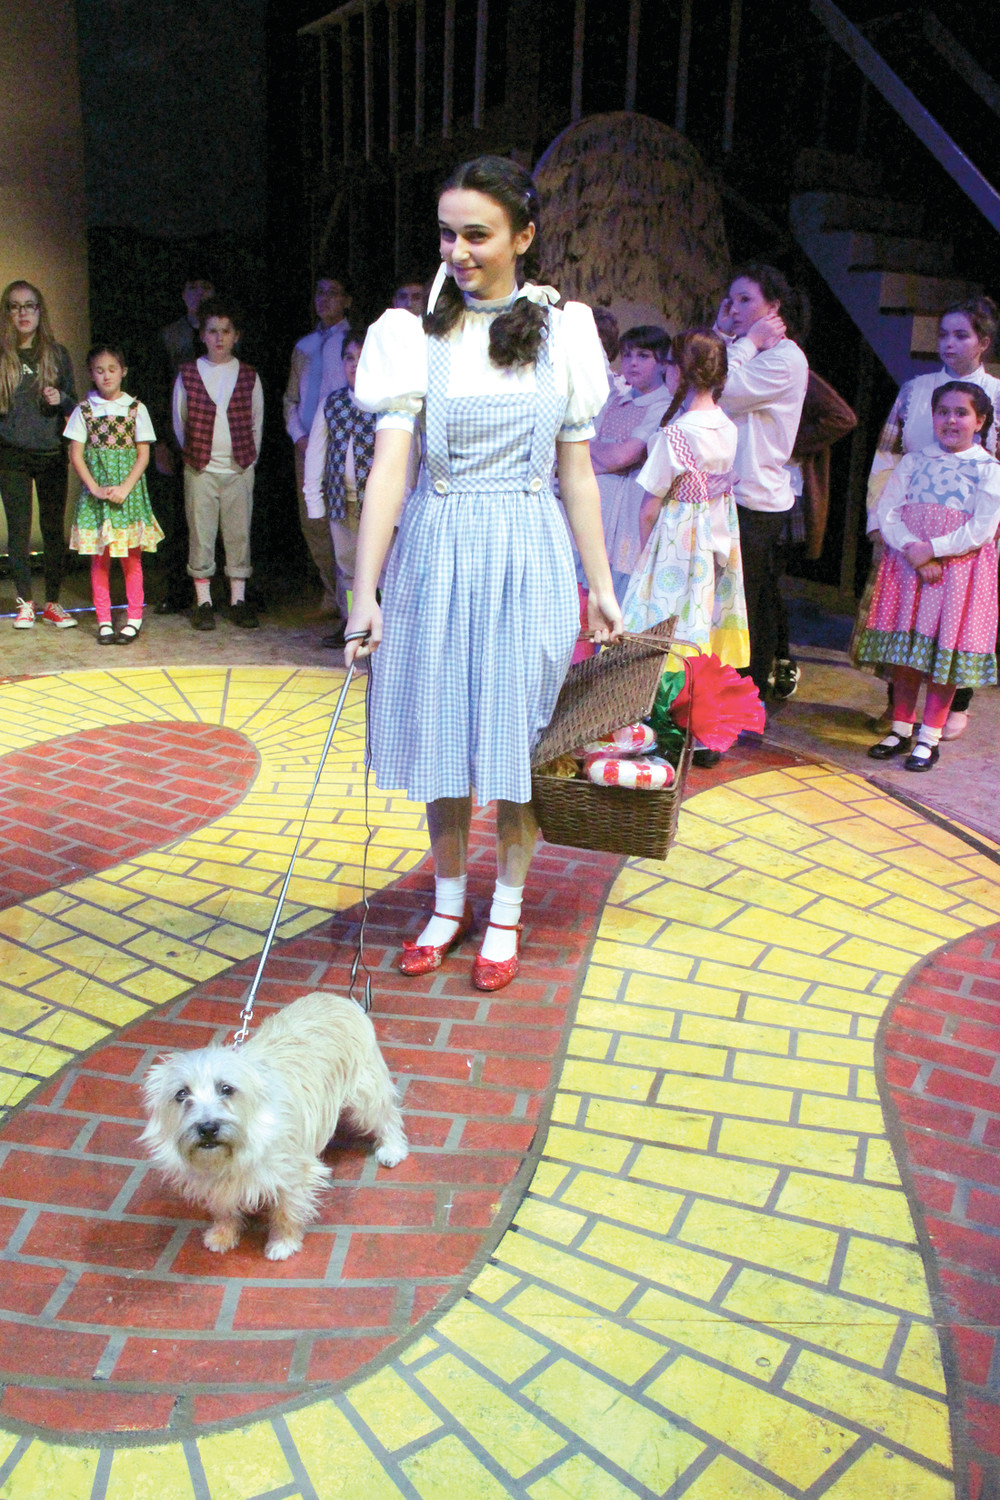 ON THE YELLOW BRICK ROAD: Dorothy, played by Emily Fielding, said in a break from rehearsal Tuesday that she's more scared for the dog in the role of Toto than of her own performance.